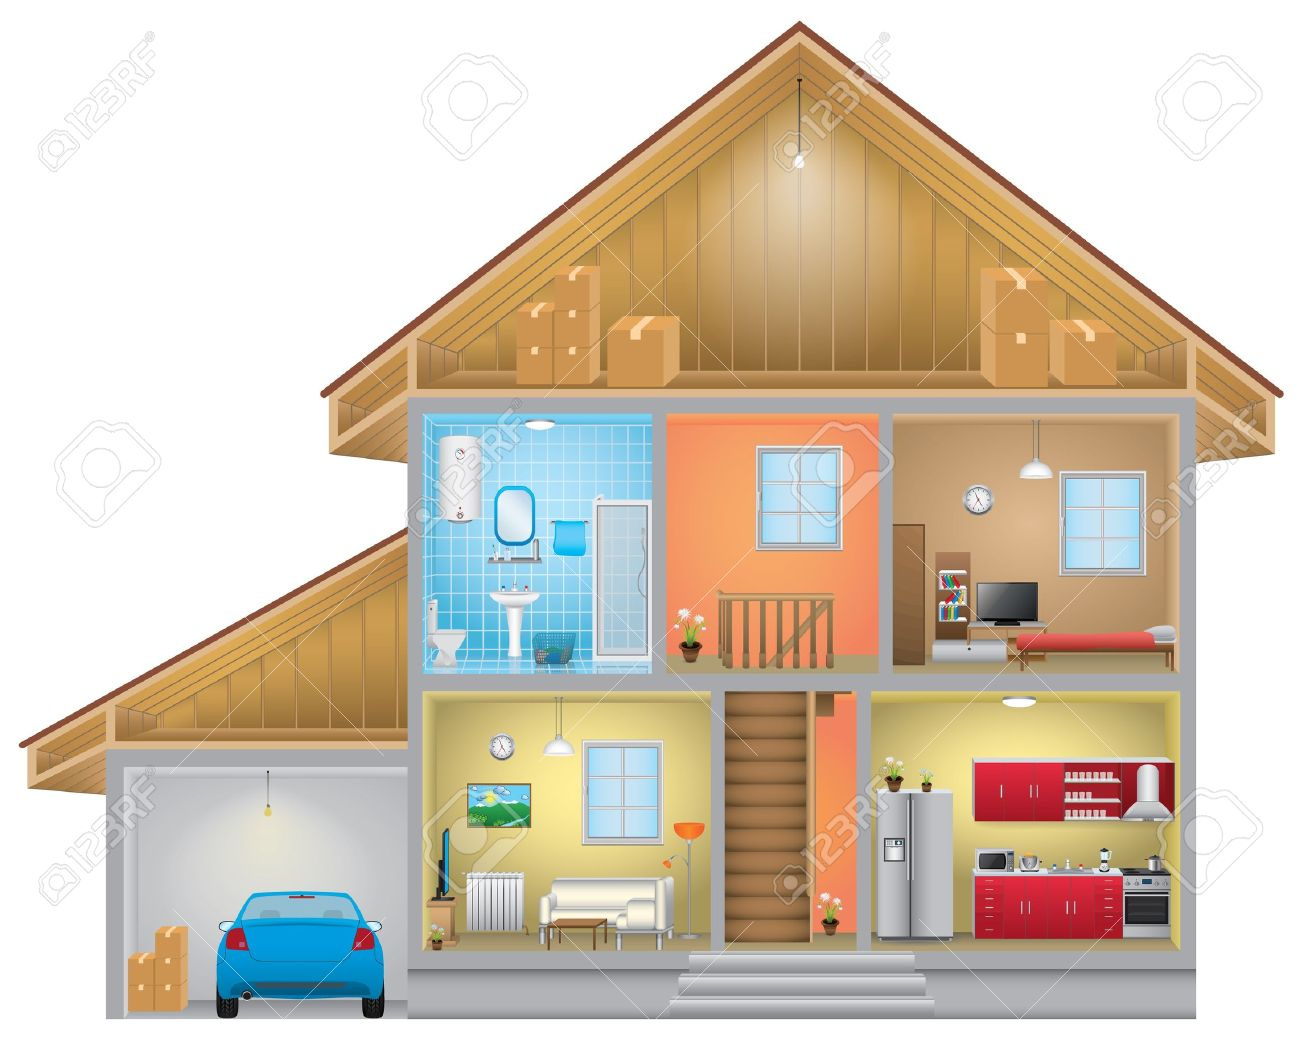 Mansion clipart inside. House free download best